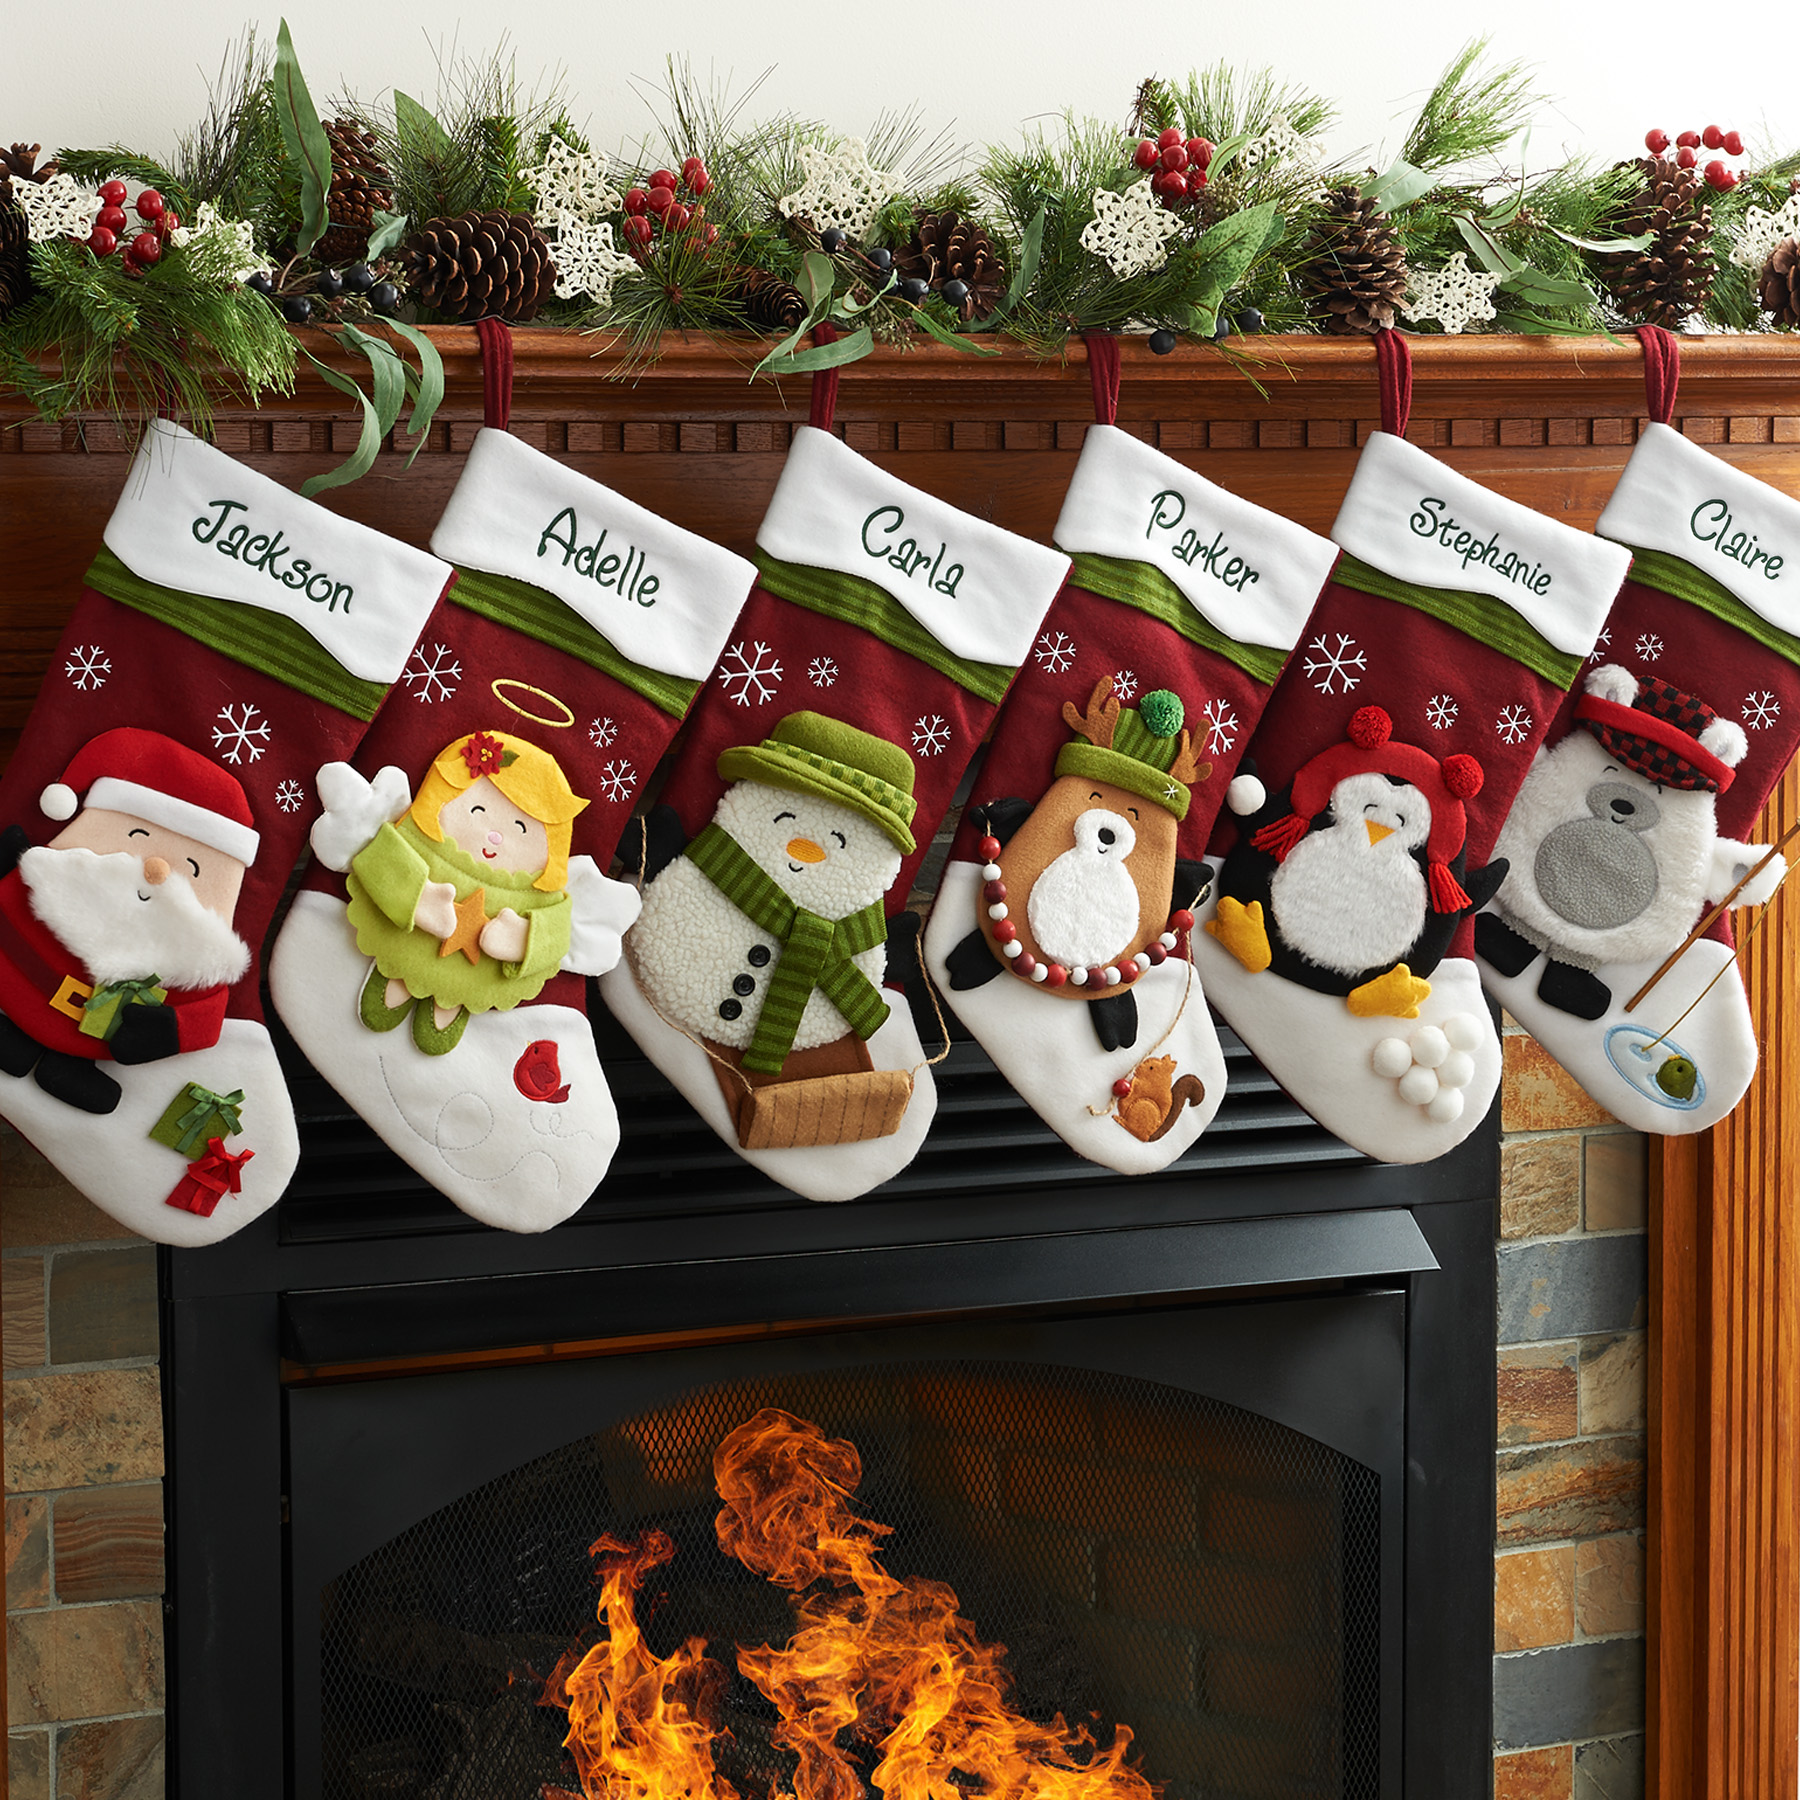 e9e4b0f71 Personalized Winter Hat Christmas Stocking Available In Different  Characters - Walmart.com